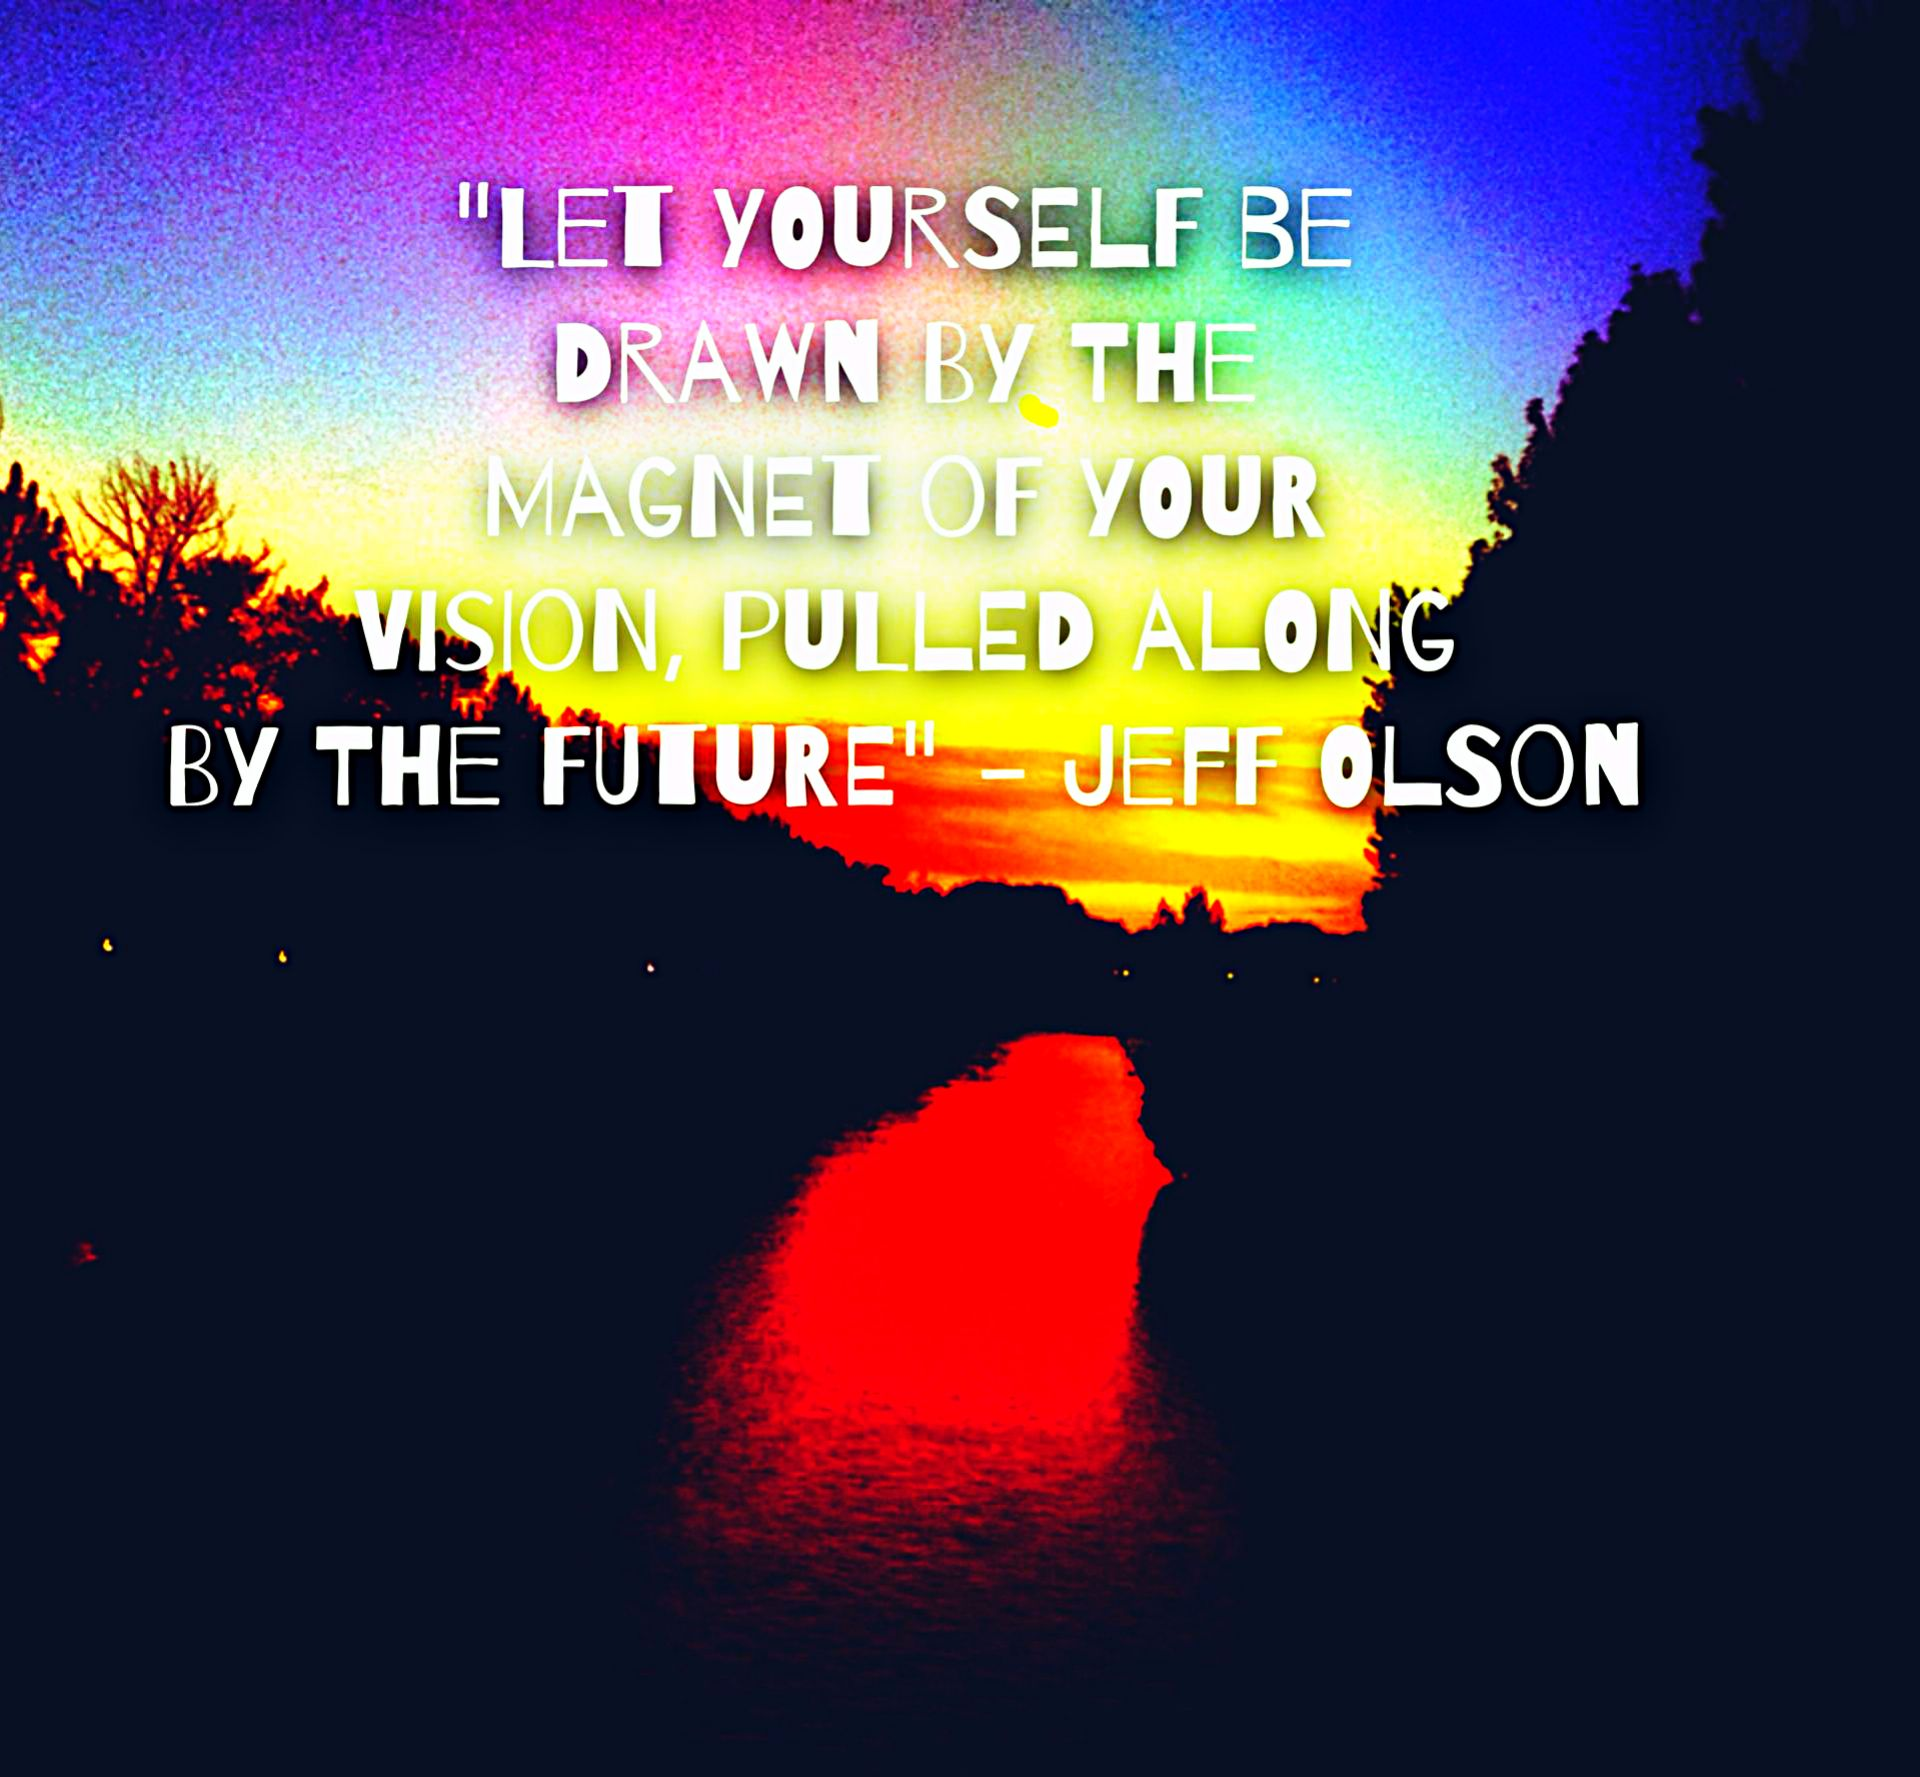 "#MondayMotivation ""Let Yourself Be Drawn By The Magnet Of Your Vision, Pulled Along By The Future."" :) #JeffOlson #Quote #WordsOfWisdom #WiseWords #BuildYourDream #LiveBetter"